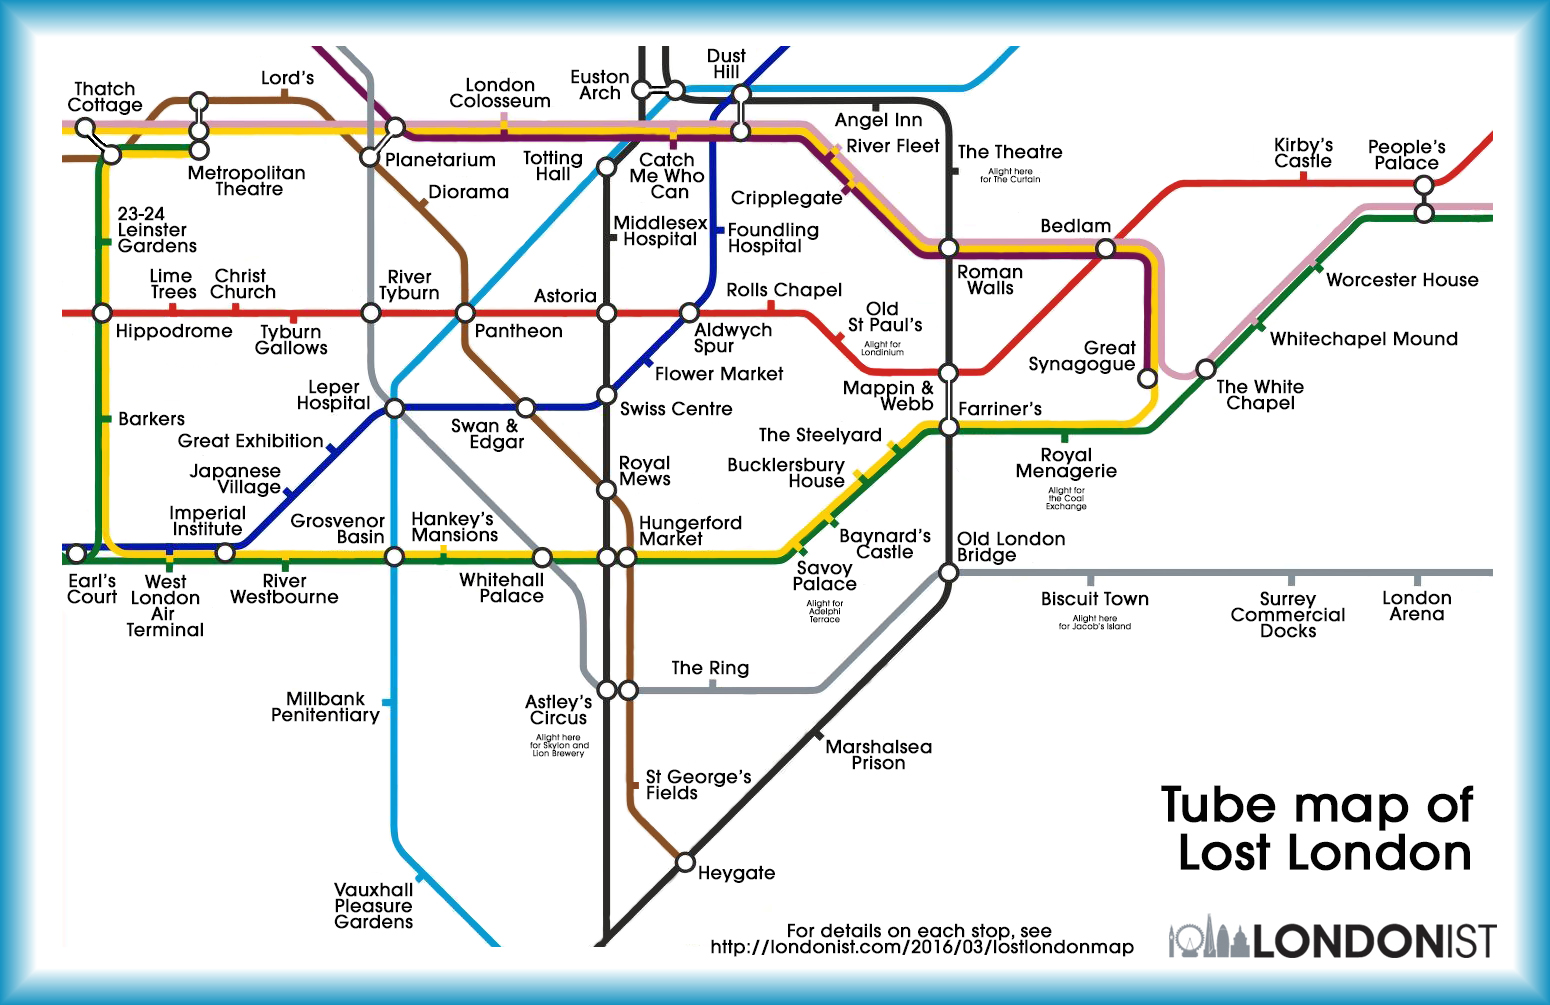 The Lost London Tube Map Londonist